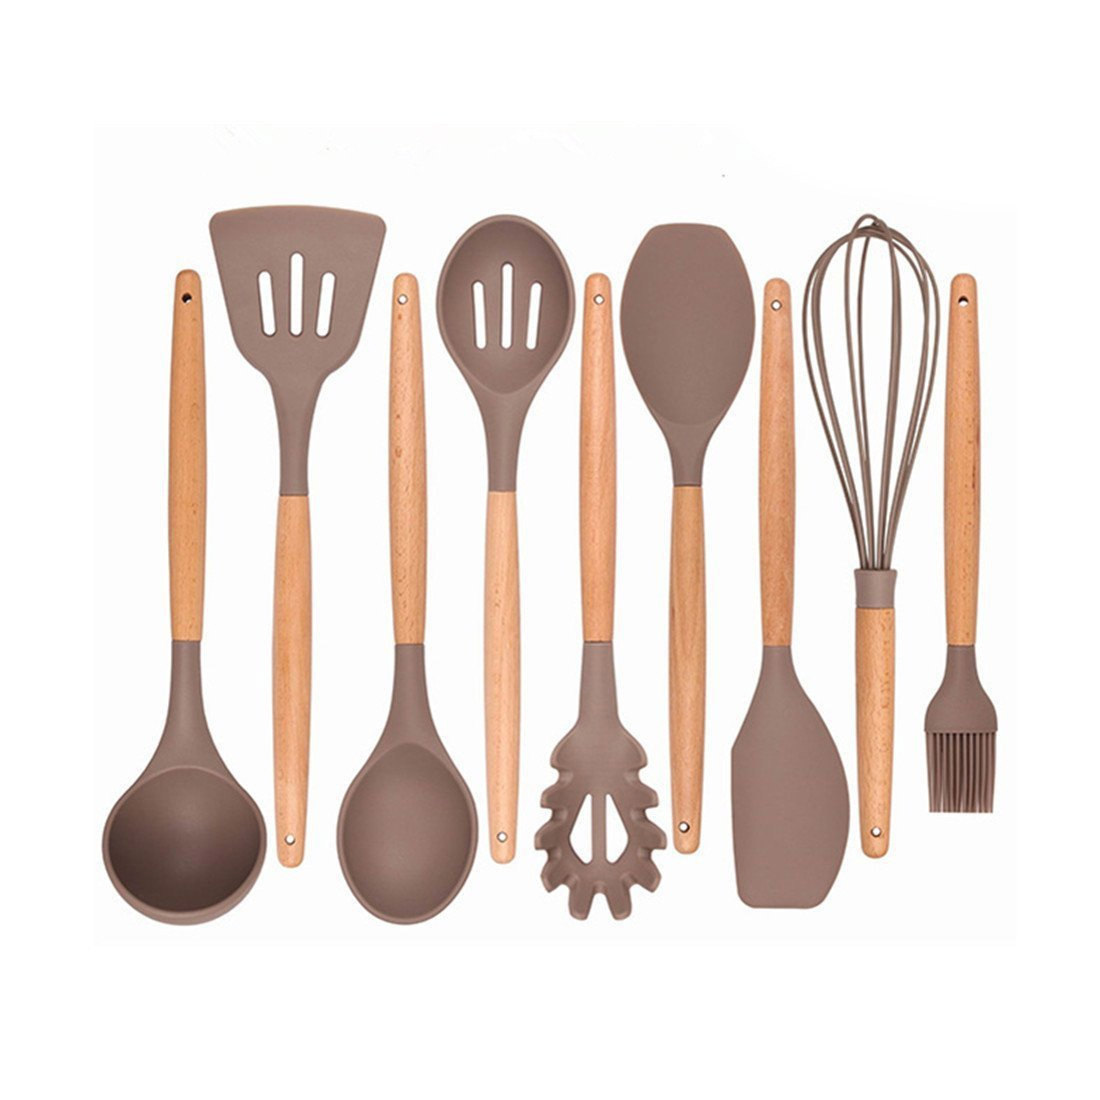 TOOGOO Kitchen Utensils - Cooking Utensil - 9-piece Silicone Utensil Set Spatula Set with Beech Wood Handle - for Nonstick Pots Pans Utensil Set - Kitchen Tools and Gadgets (utensil set)